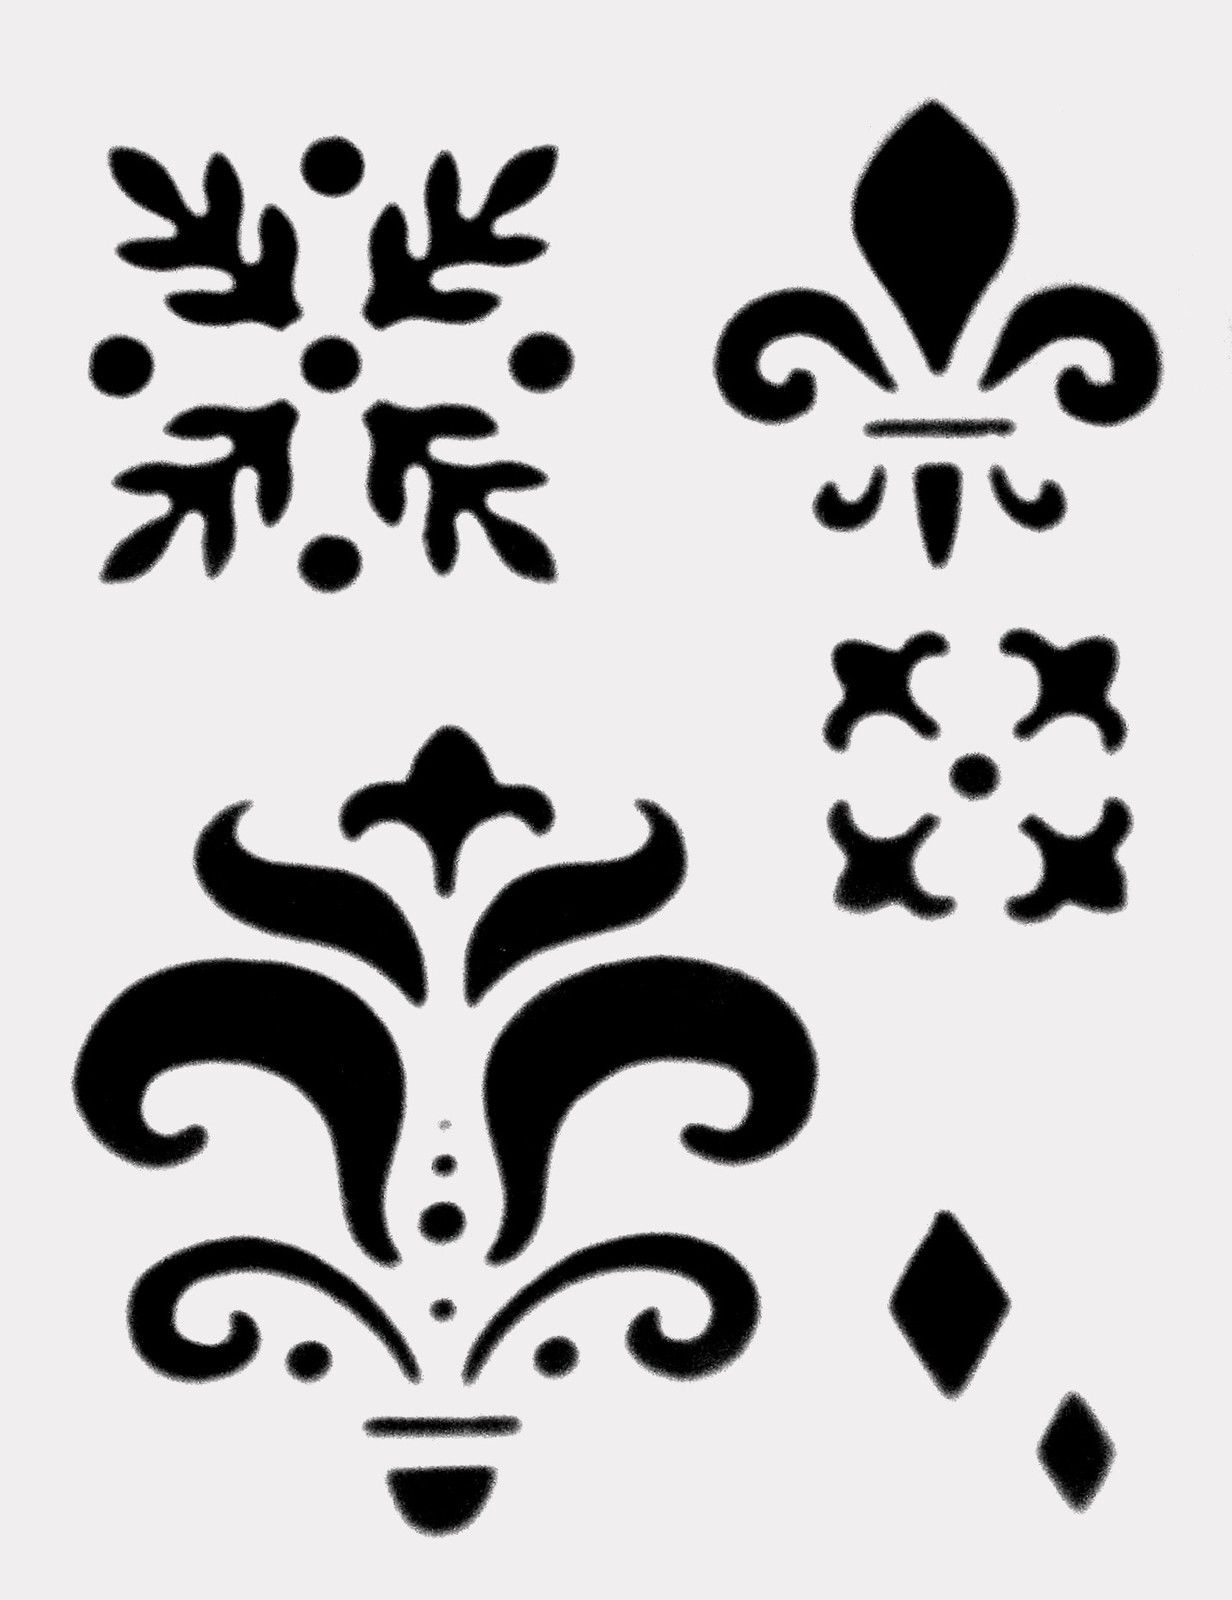 Free Saints Fleur De Lis Stencil, Download Free Clip Art, Free Clip - Damask Stencil Printable Free